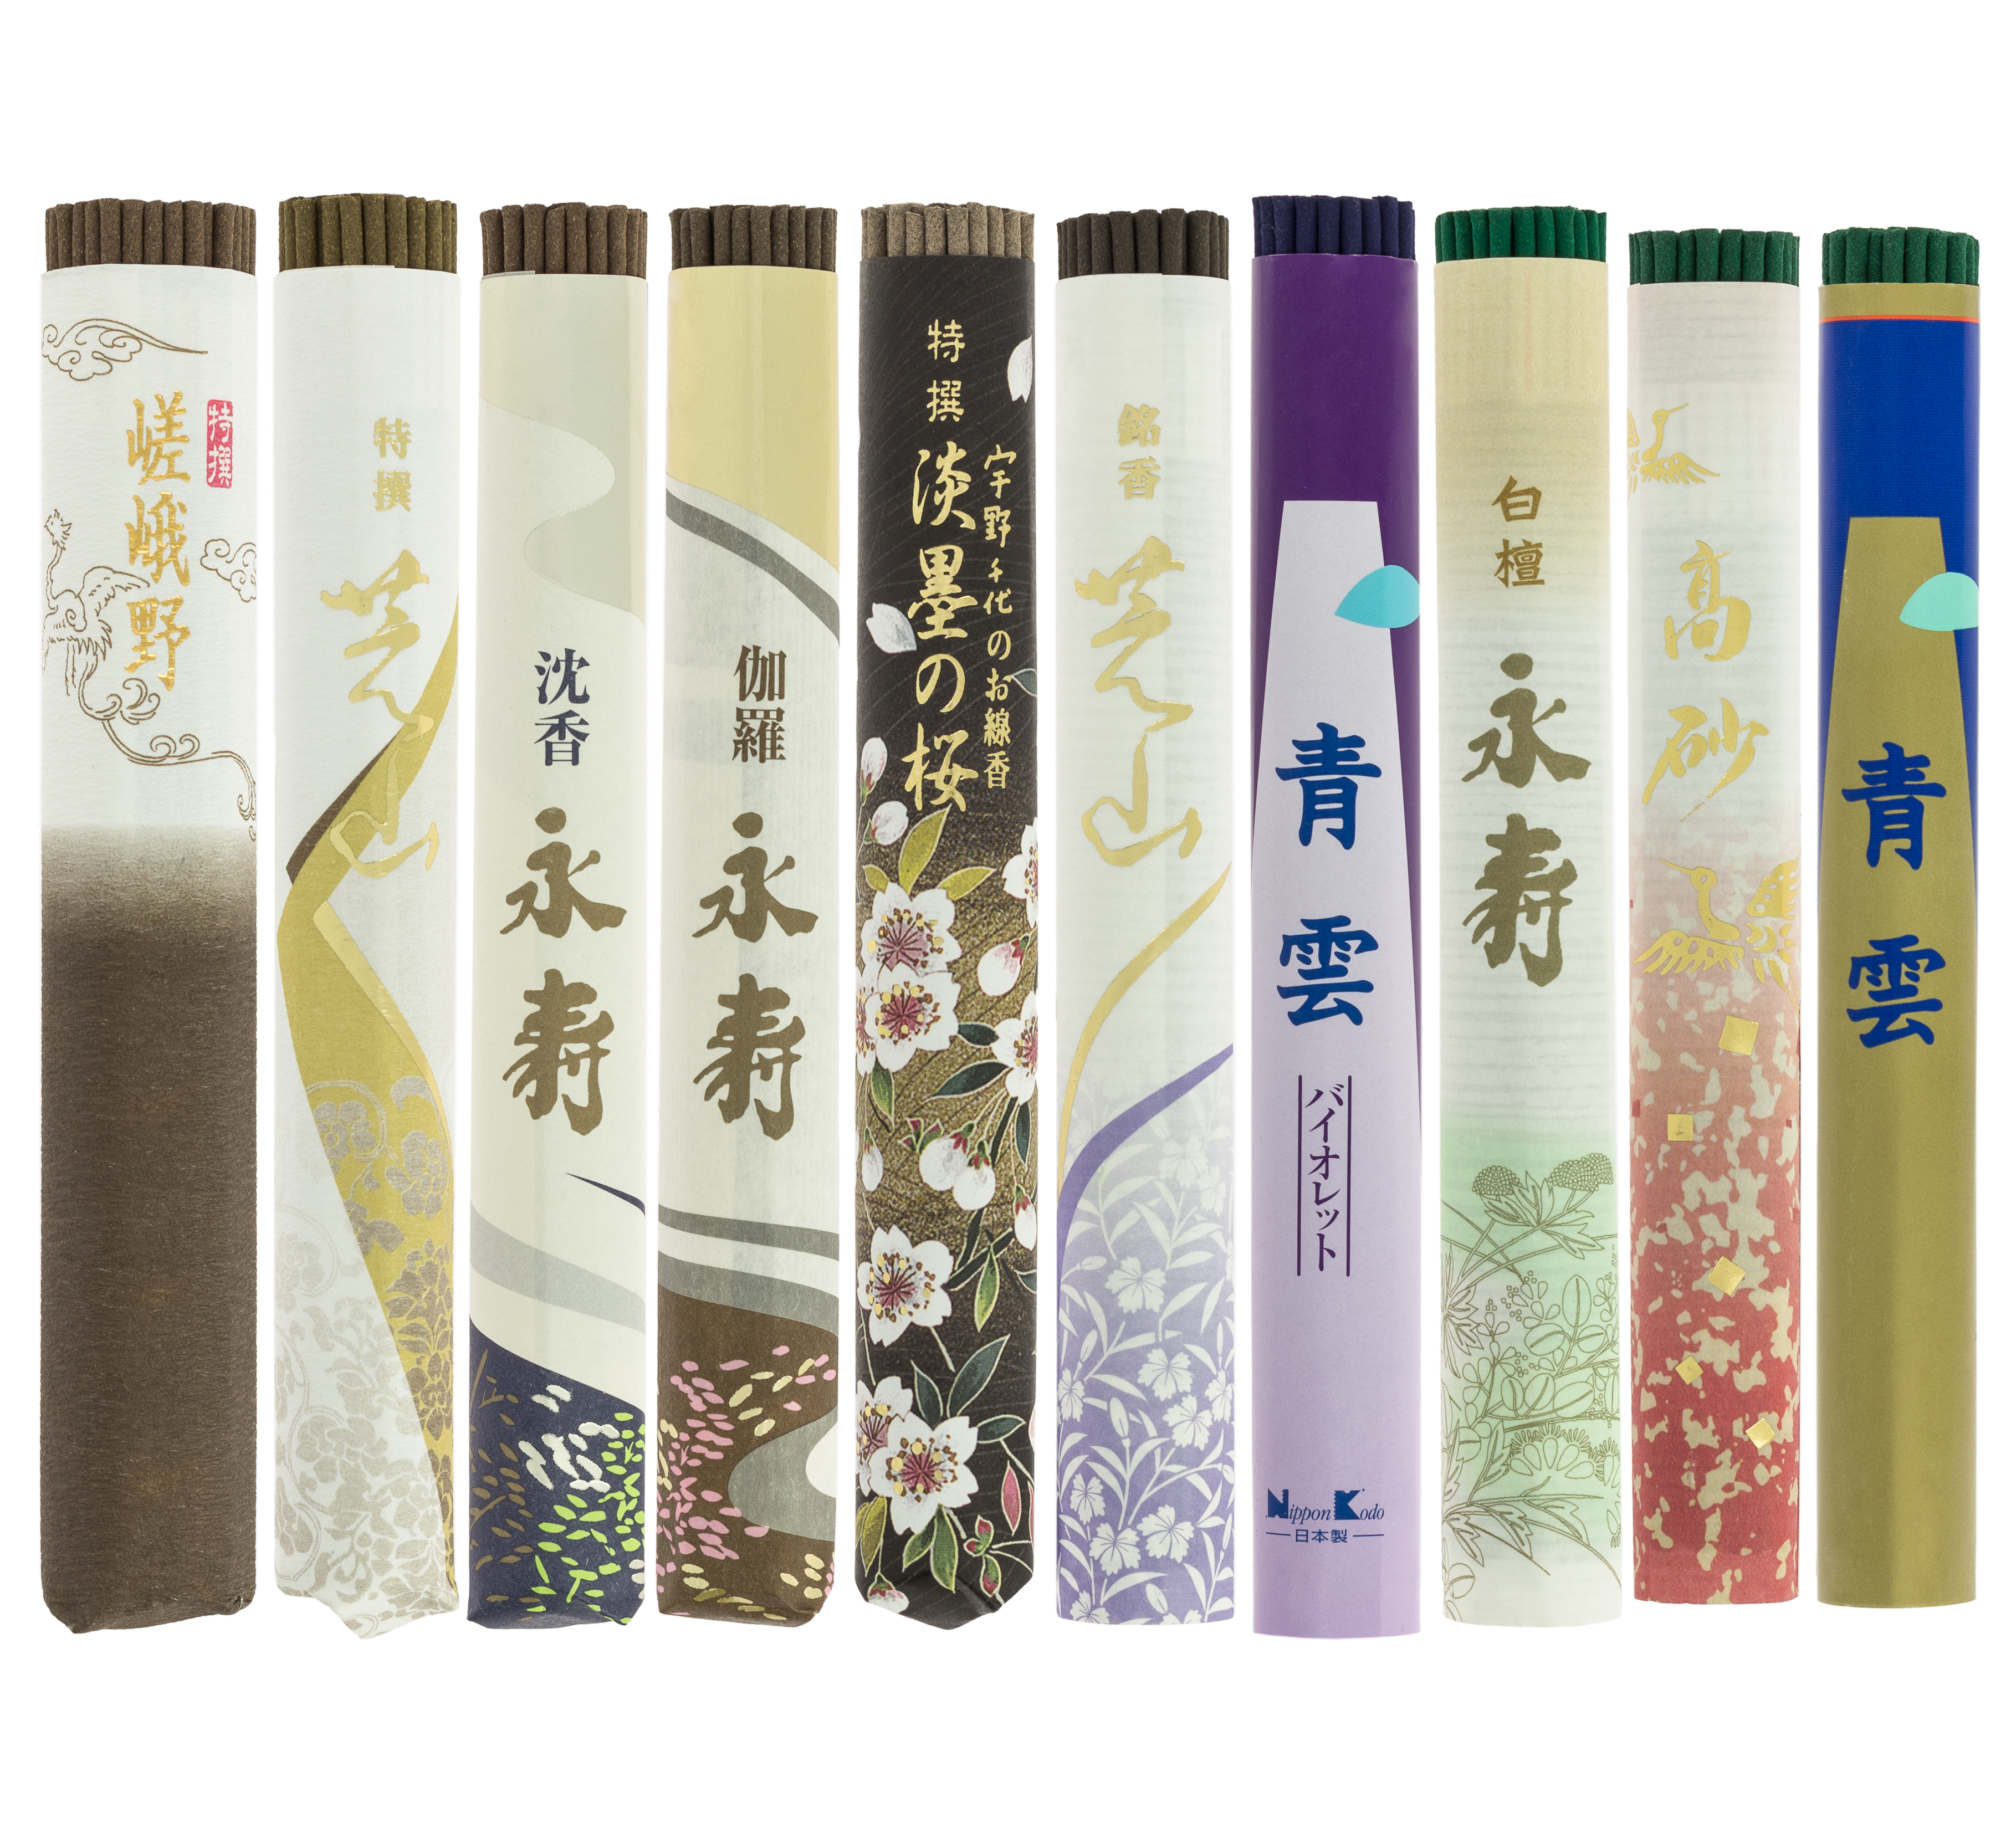 Incense Roll pack 10 units